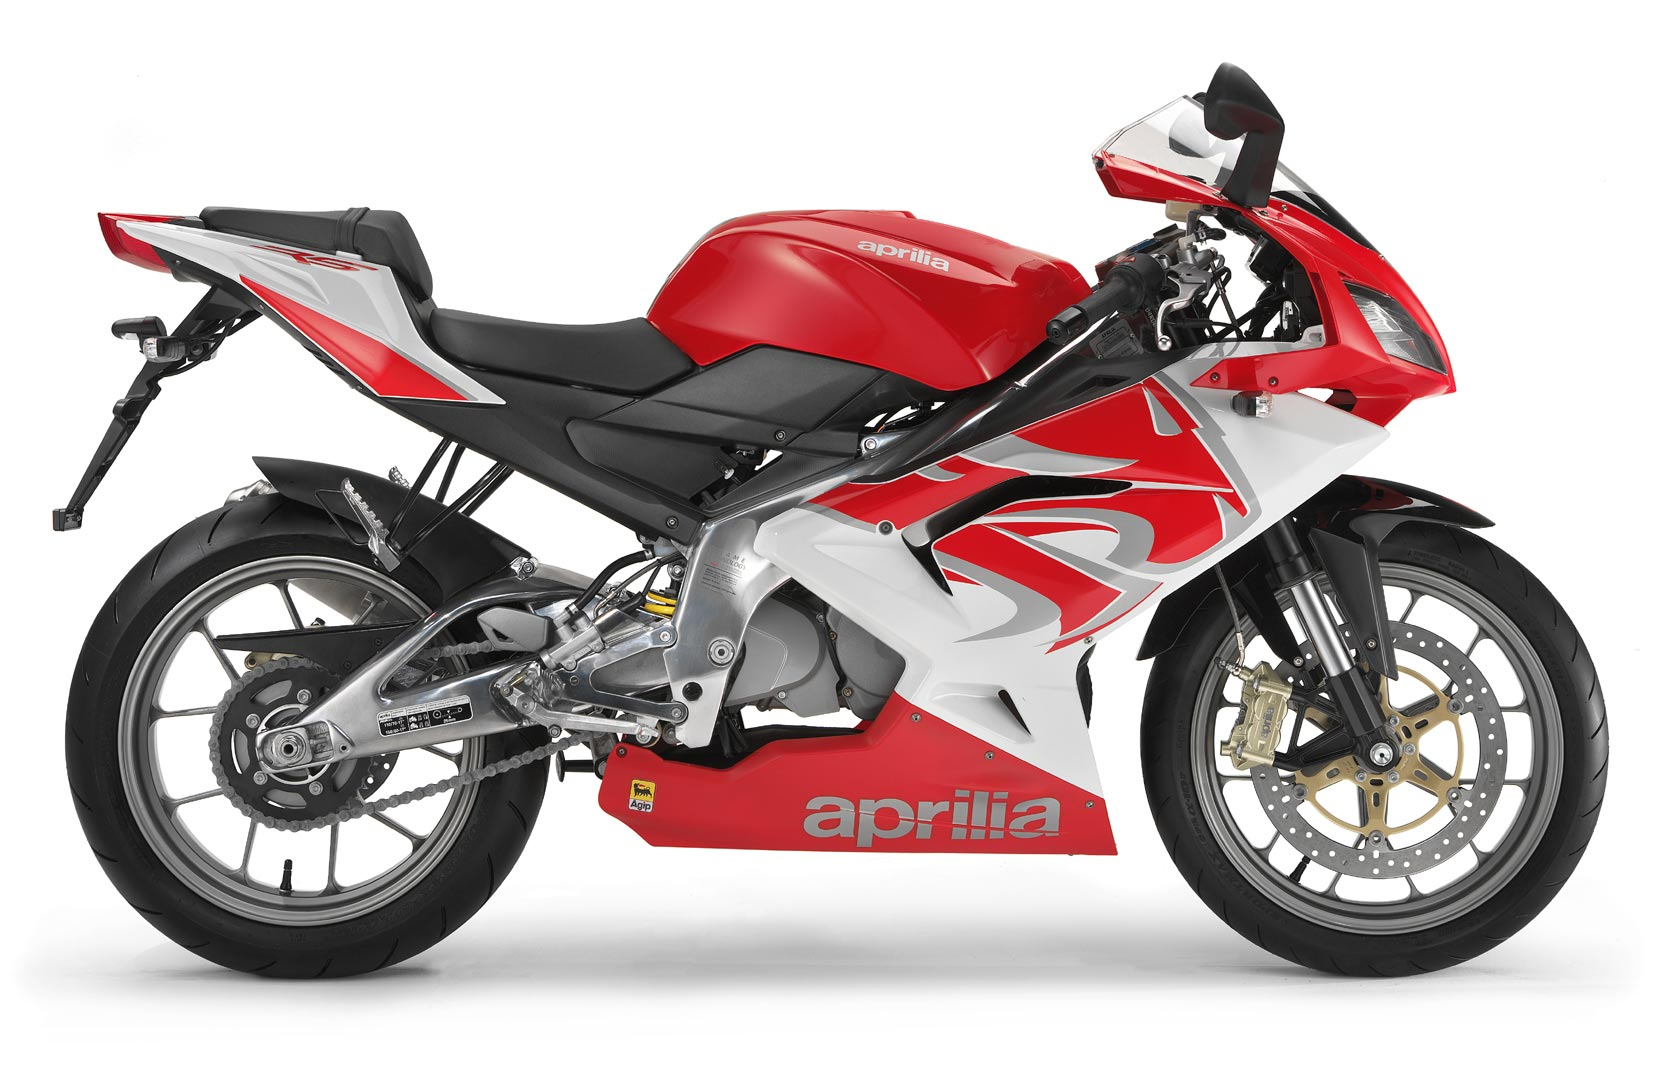 aprilia rs 125 specs 2008 2009 autoevolution. Black Bedroom Furniture Sets. Home Design Ideas